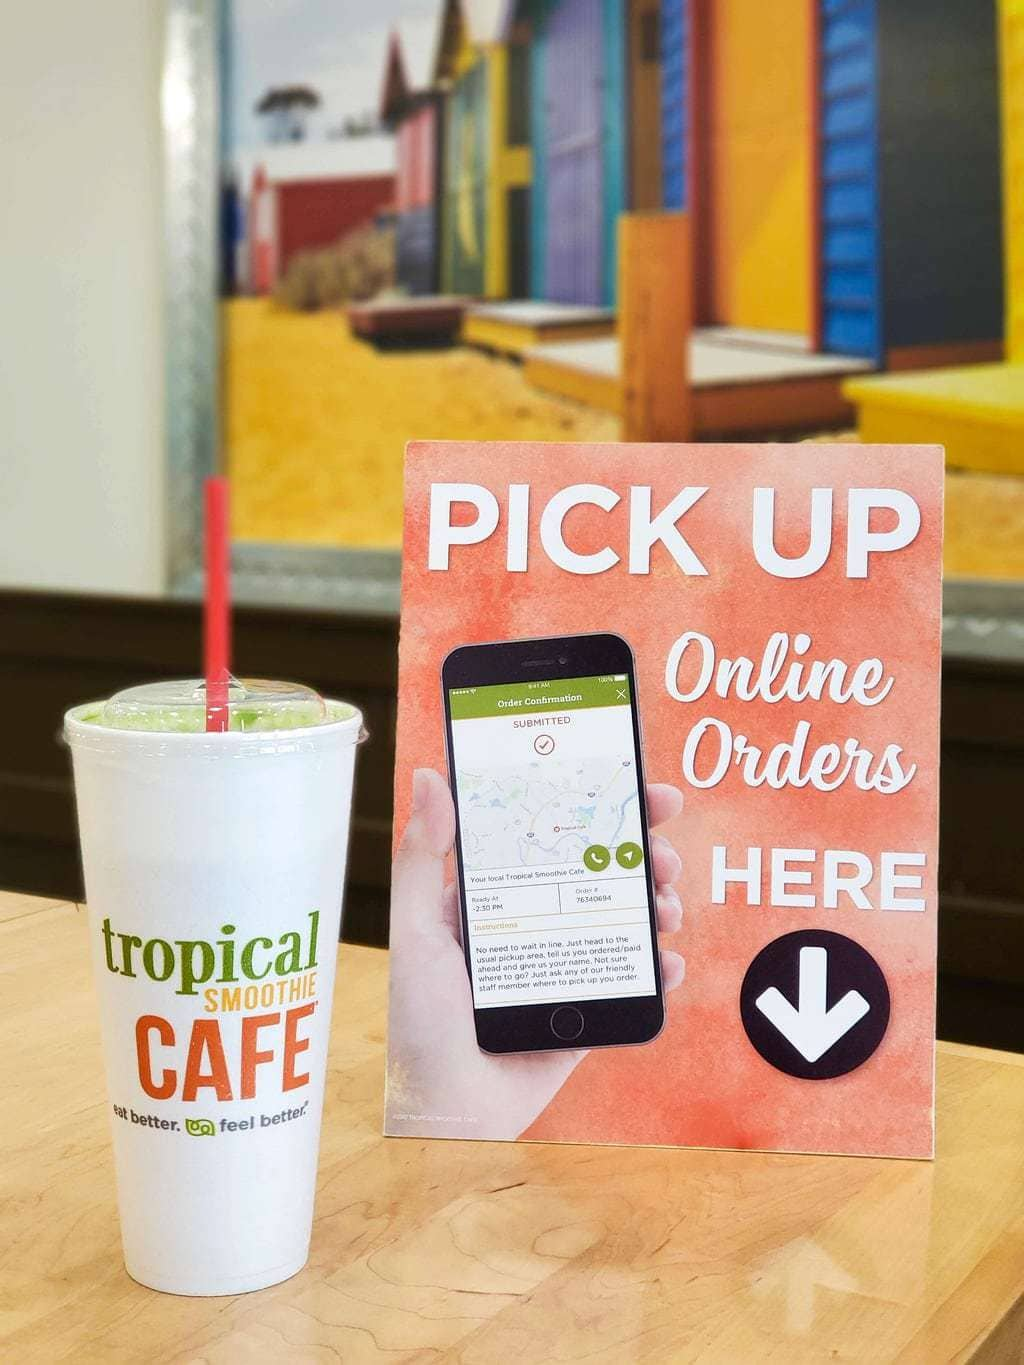 tropical smoothie cafe app for online orders